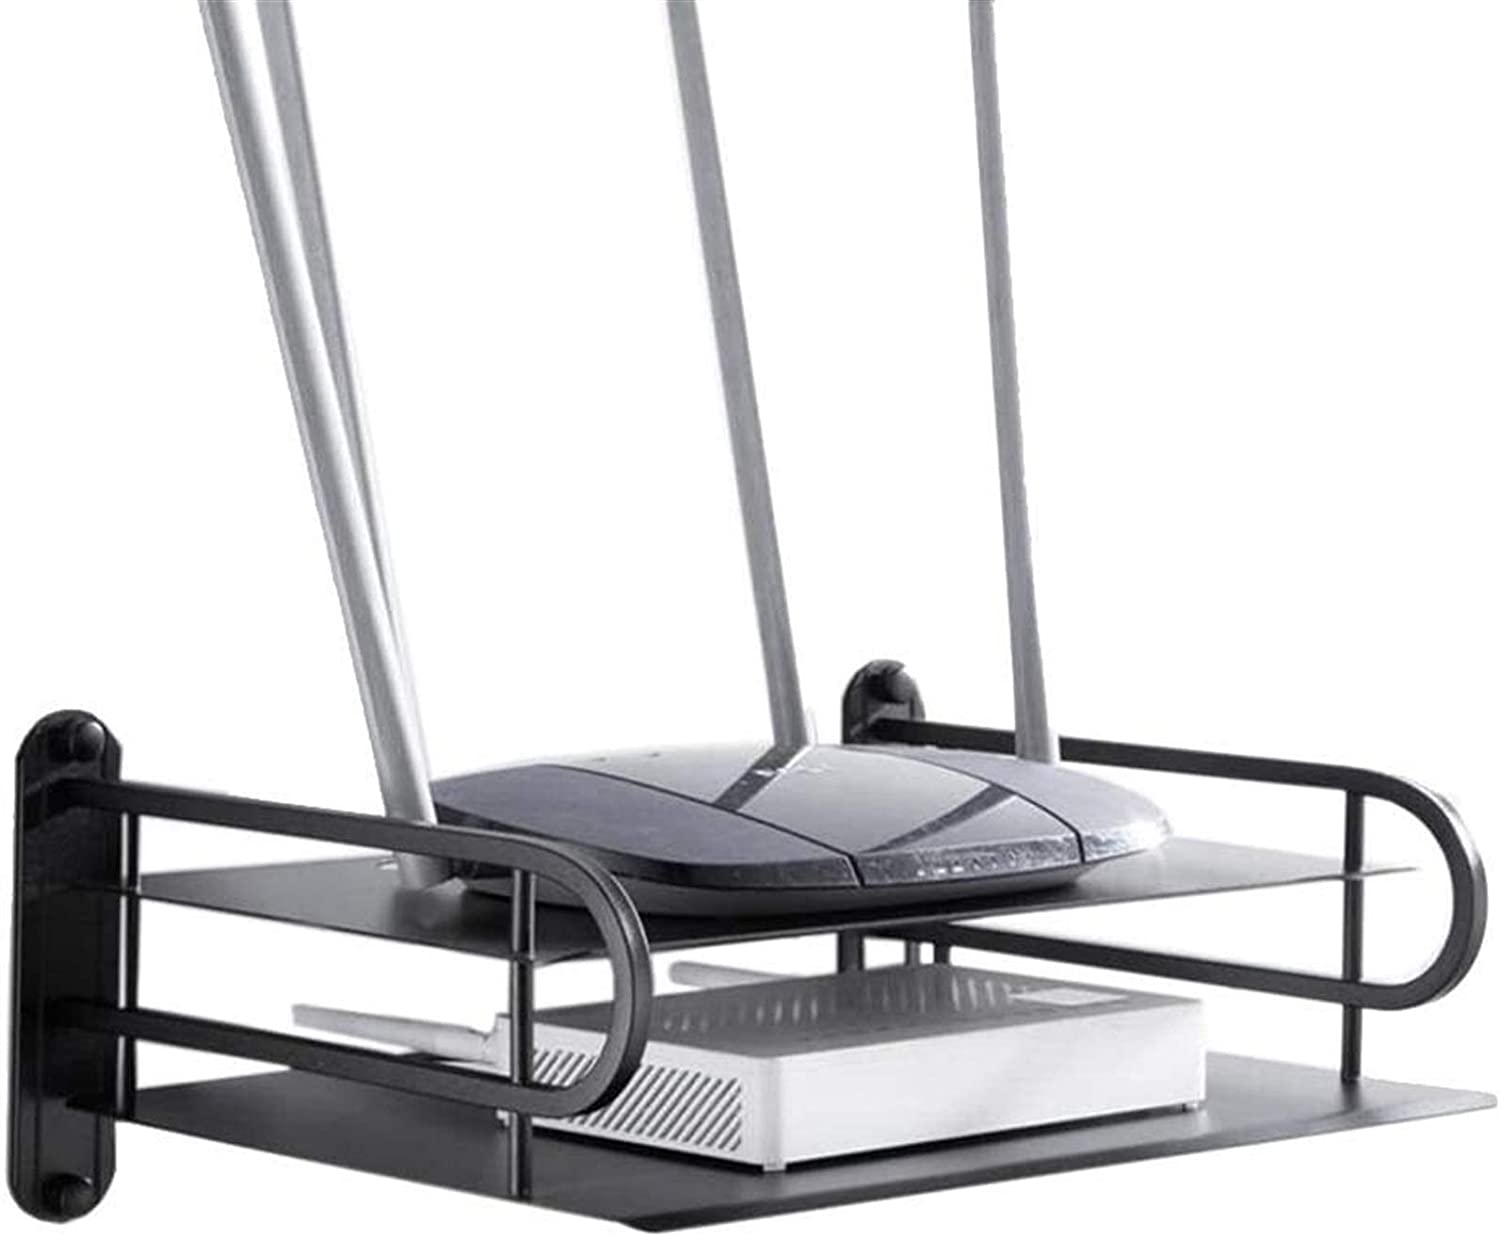 BECCYYLY Router Rack Shelves Ranking TOP3 Black She Mount Wall Popular brand in the world Alloy Alumimum